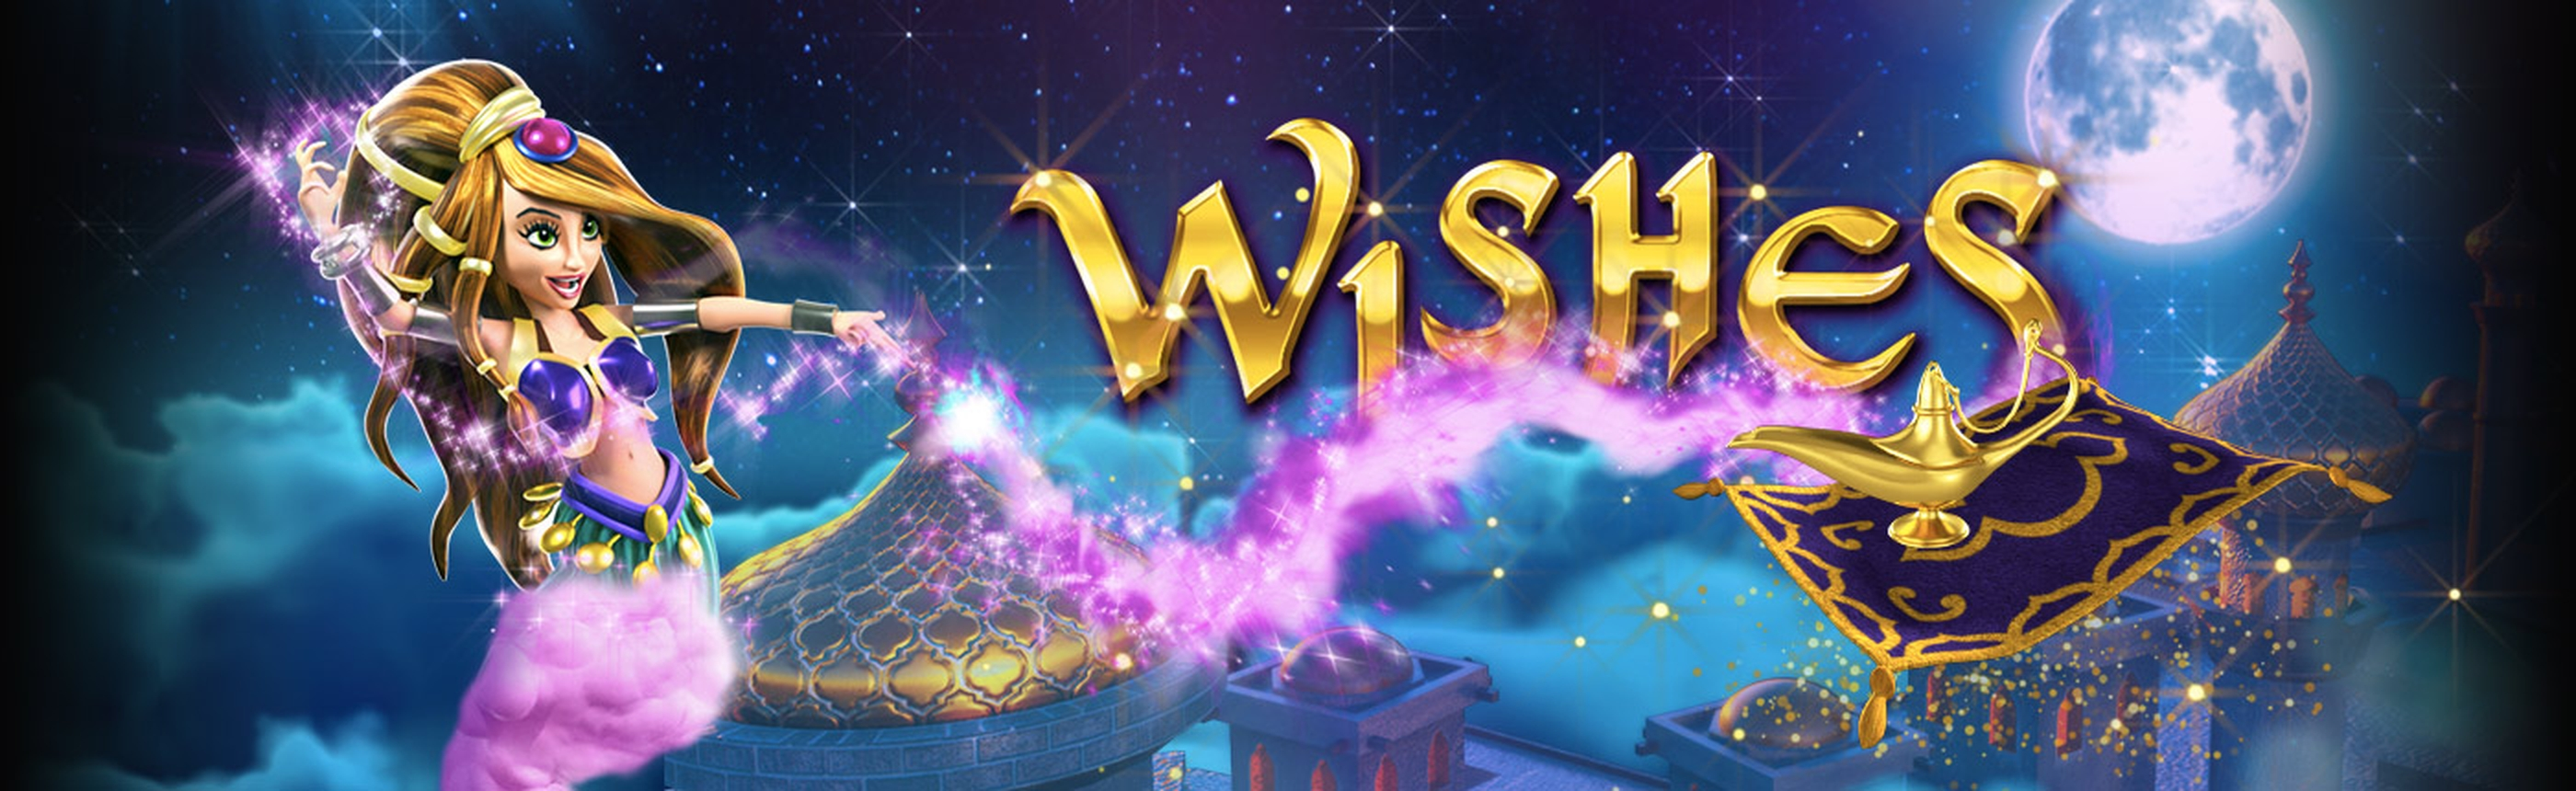 The Wishes Online Slot Demo Game by Revolver Gaming